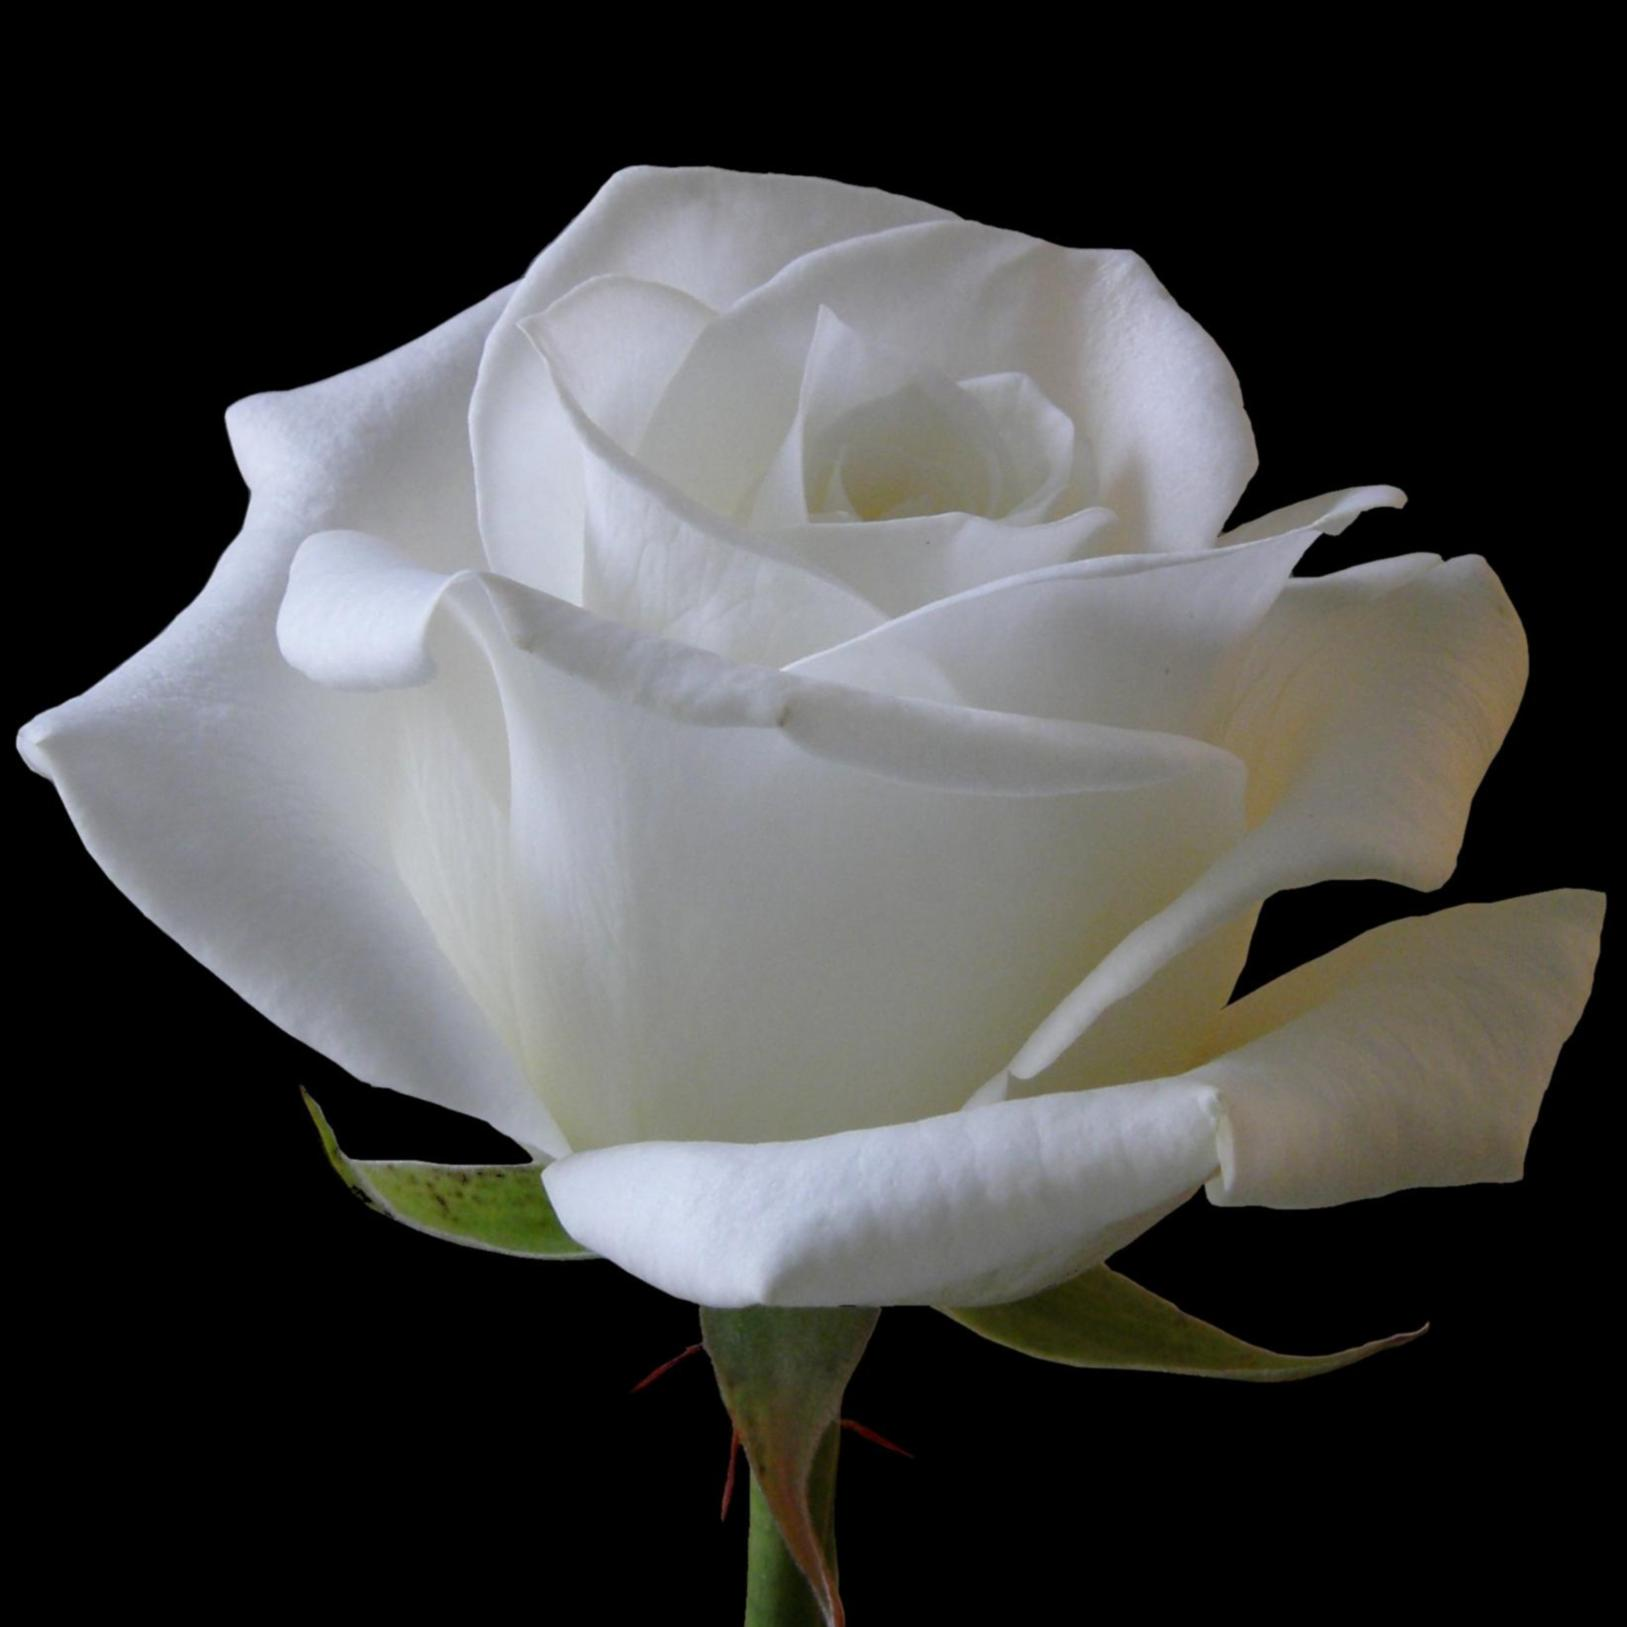 One White Rose Rose Day Pics (HD Imag...